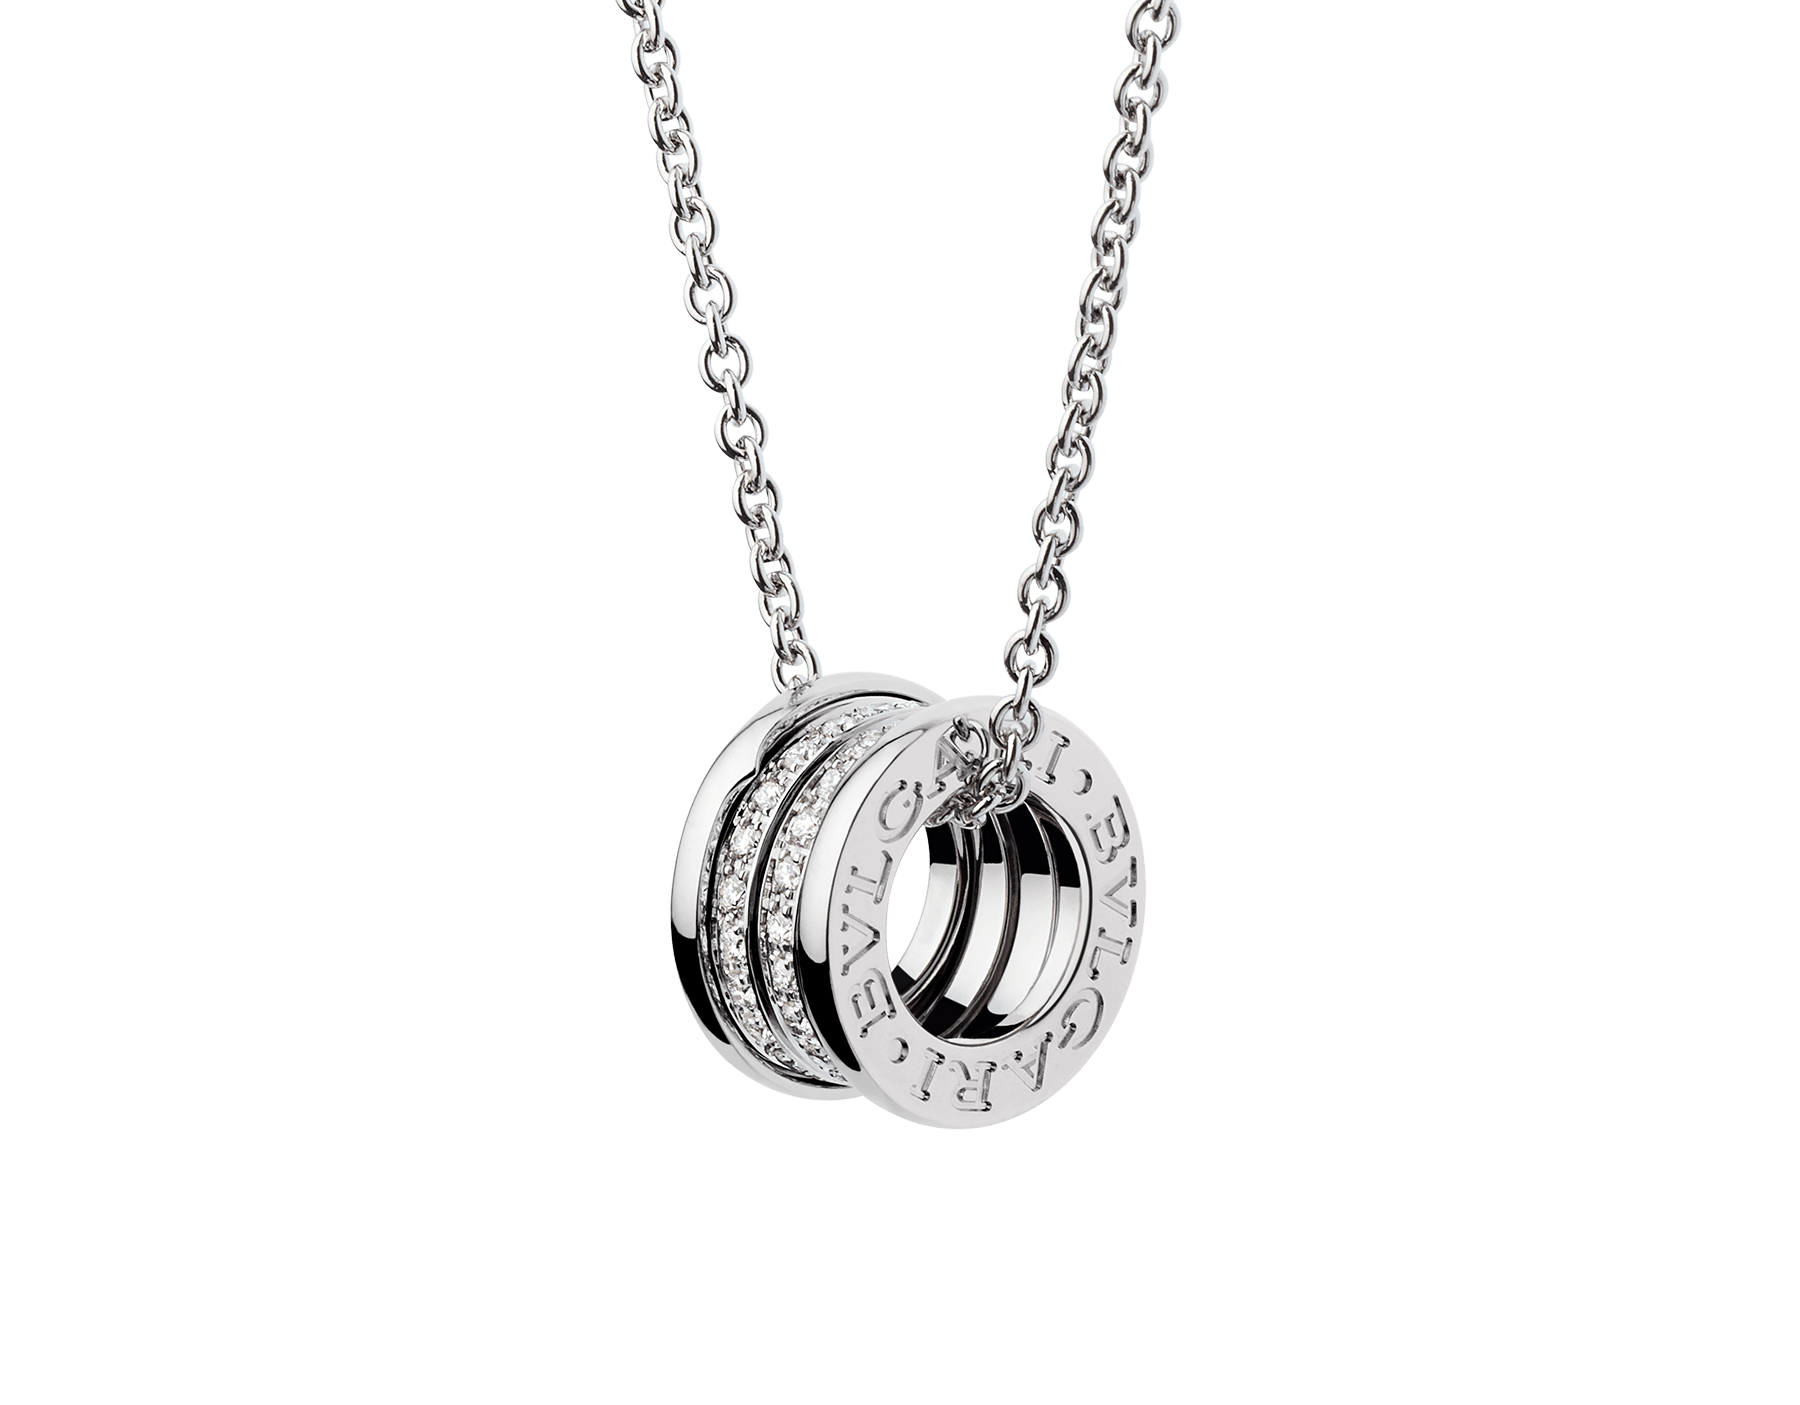 B.zero1 18 kt white gold necklace with small round pendant in 18kt white gold, set with pavé diamonds on the spiral. 352816 image 1